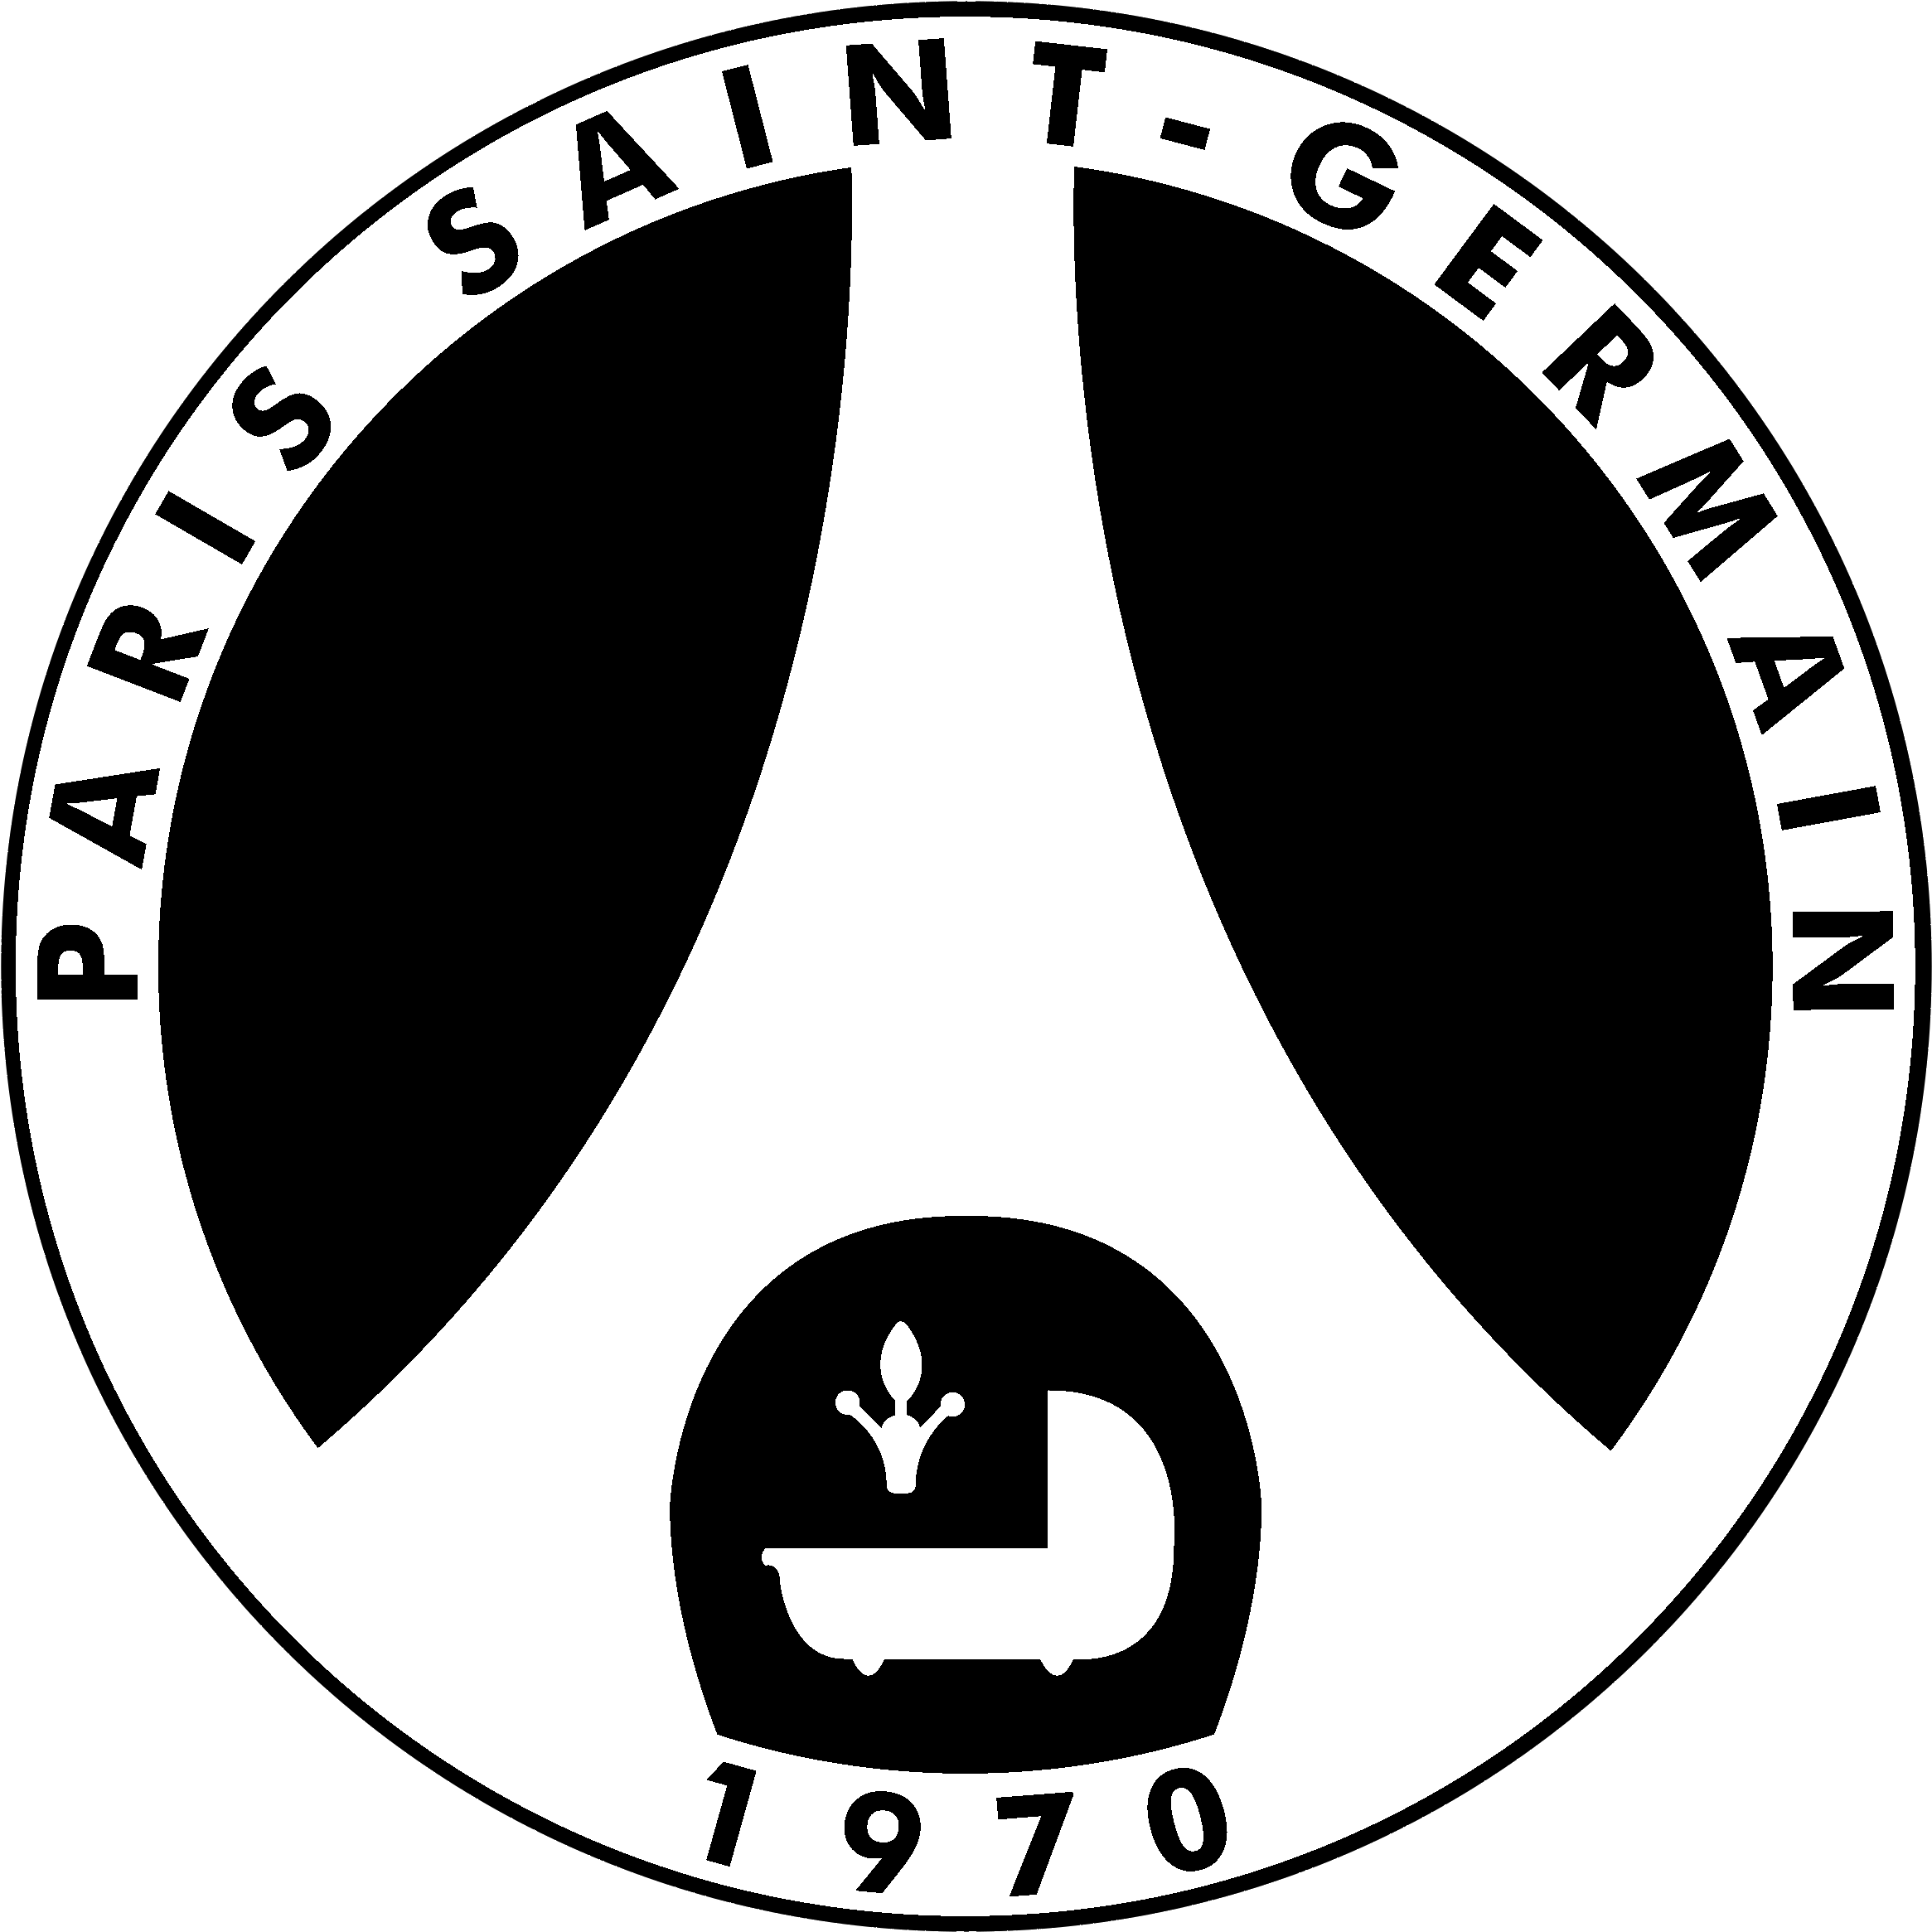 Download Psg Logo Black And White Logo Paris Saint Germain Negro Full Size Png Image Pngkit